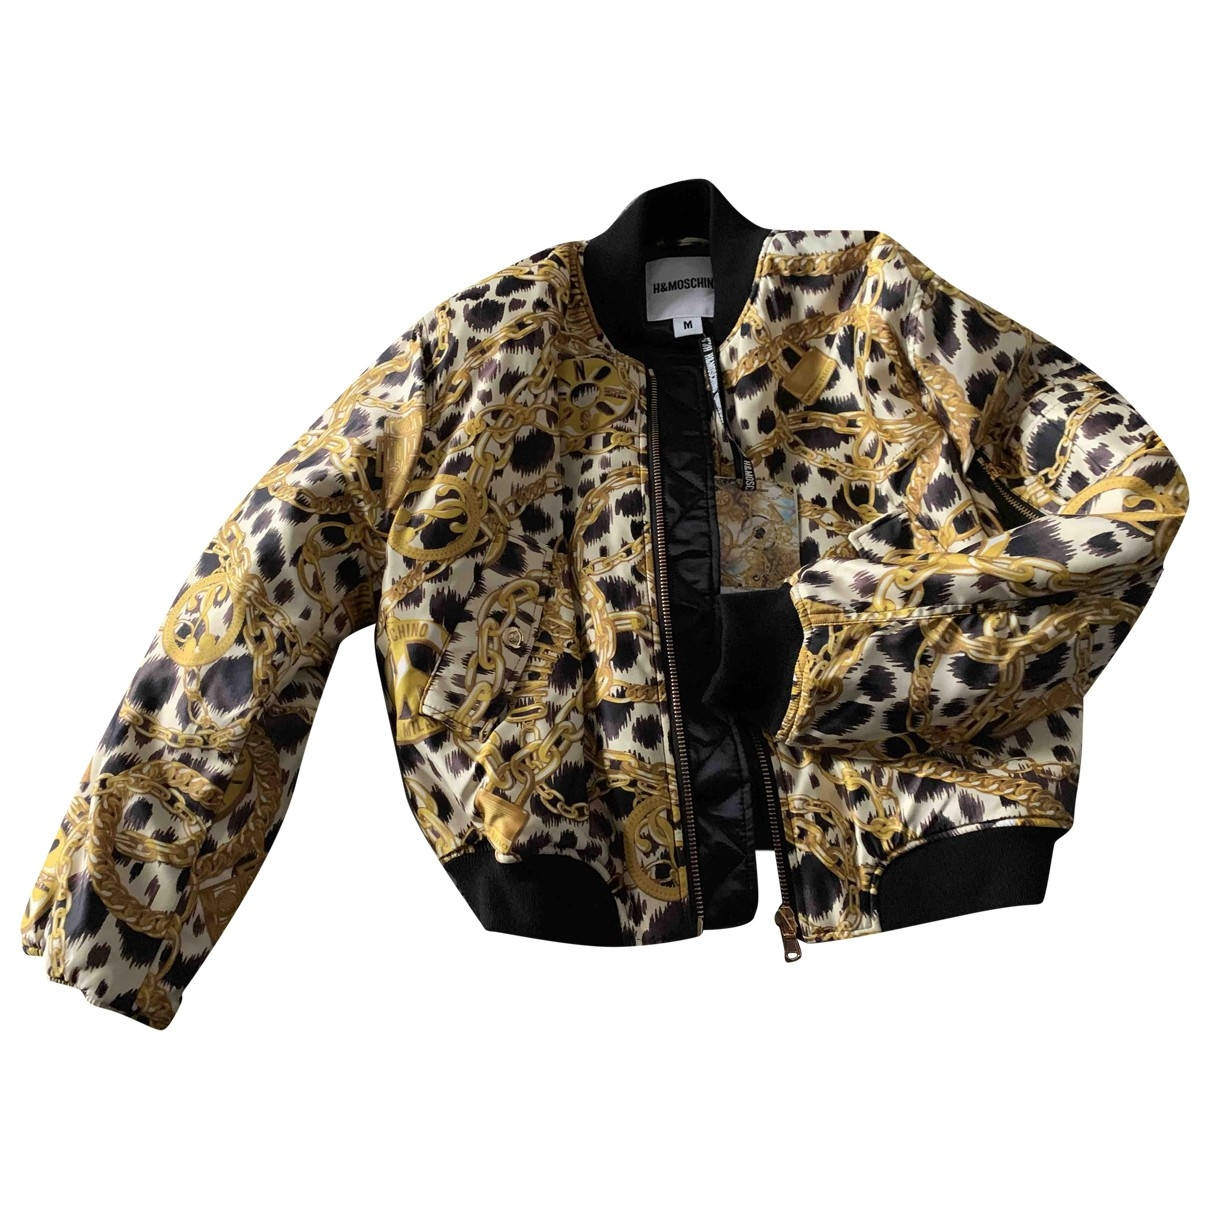 Moschino For H&m \N Gold jacket for Women M International